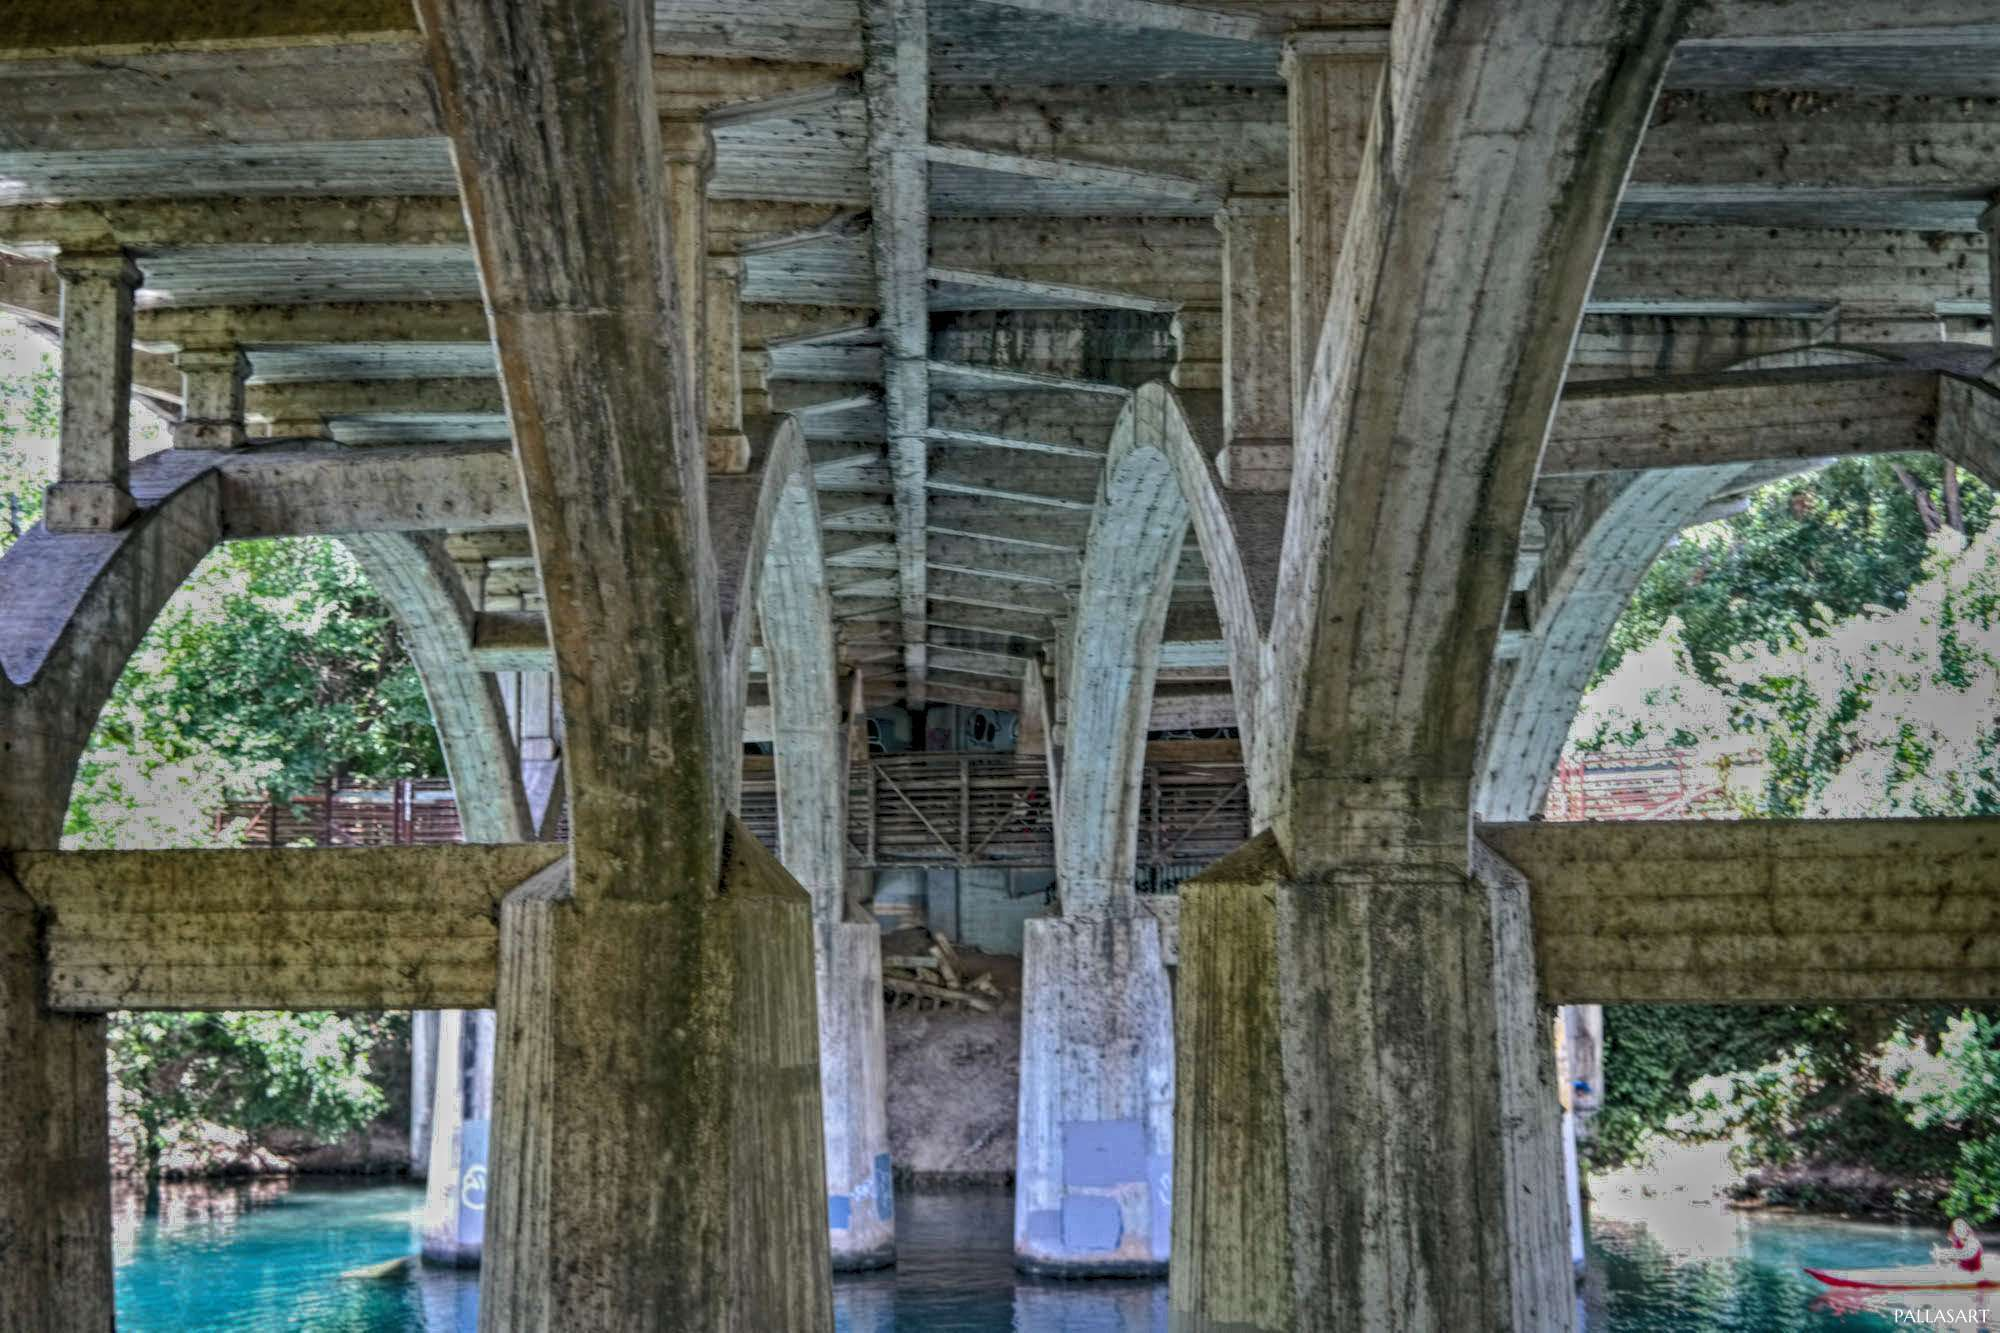 Barton Creek under Barton Springs Road Bridge